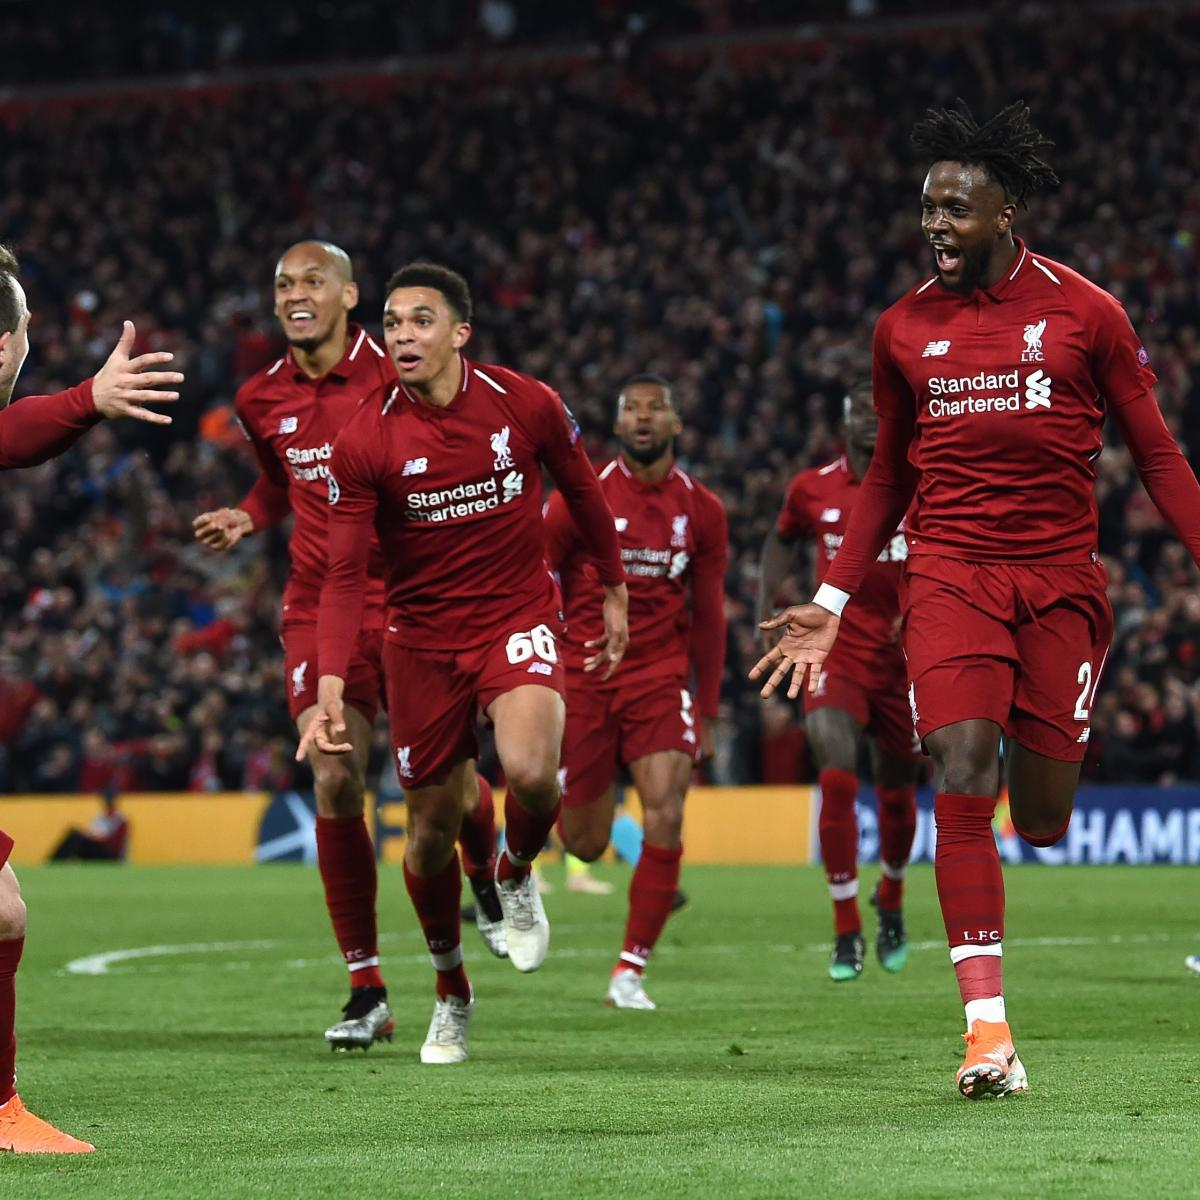 Barcelona Vs Liverpool Odds Live Stream Tv Info For: Liverpool Vs. Wolverhampton Wanderers: Odds, Preview, Live